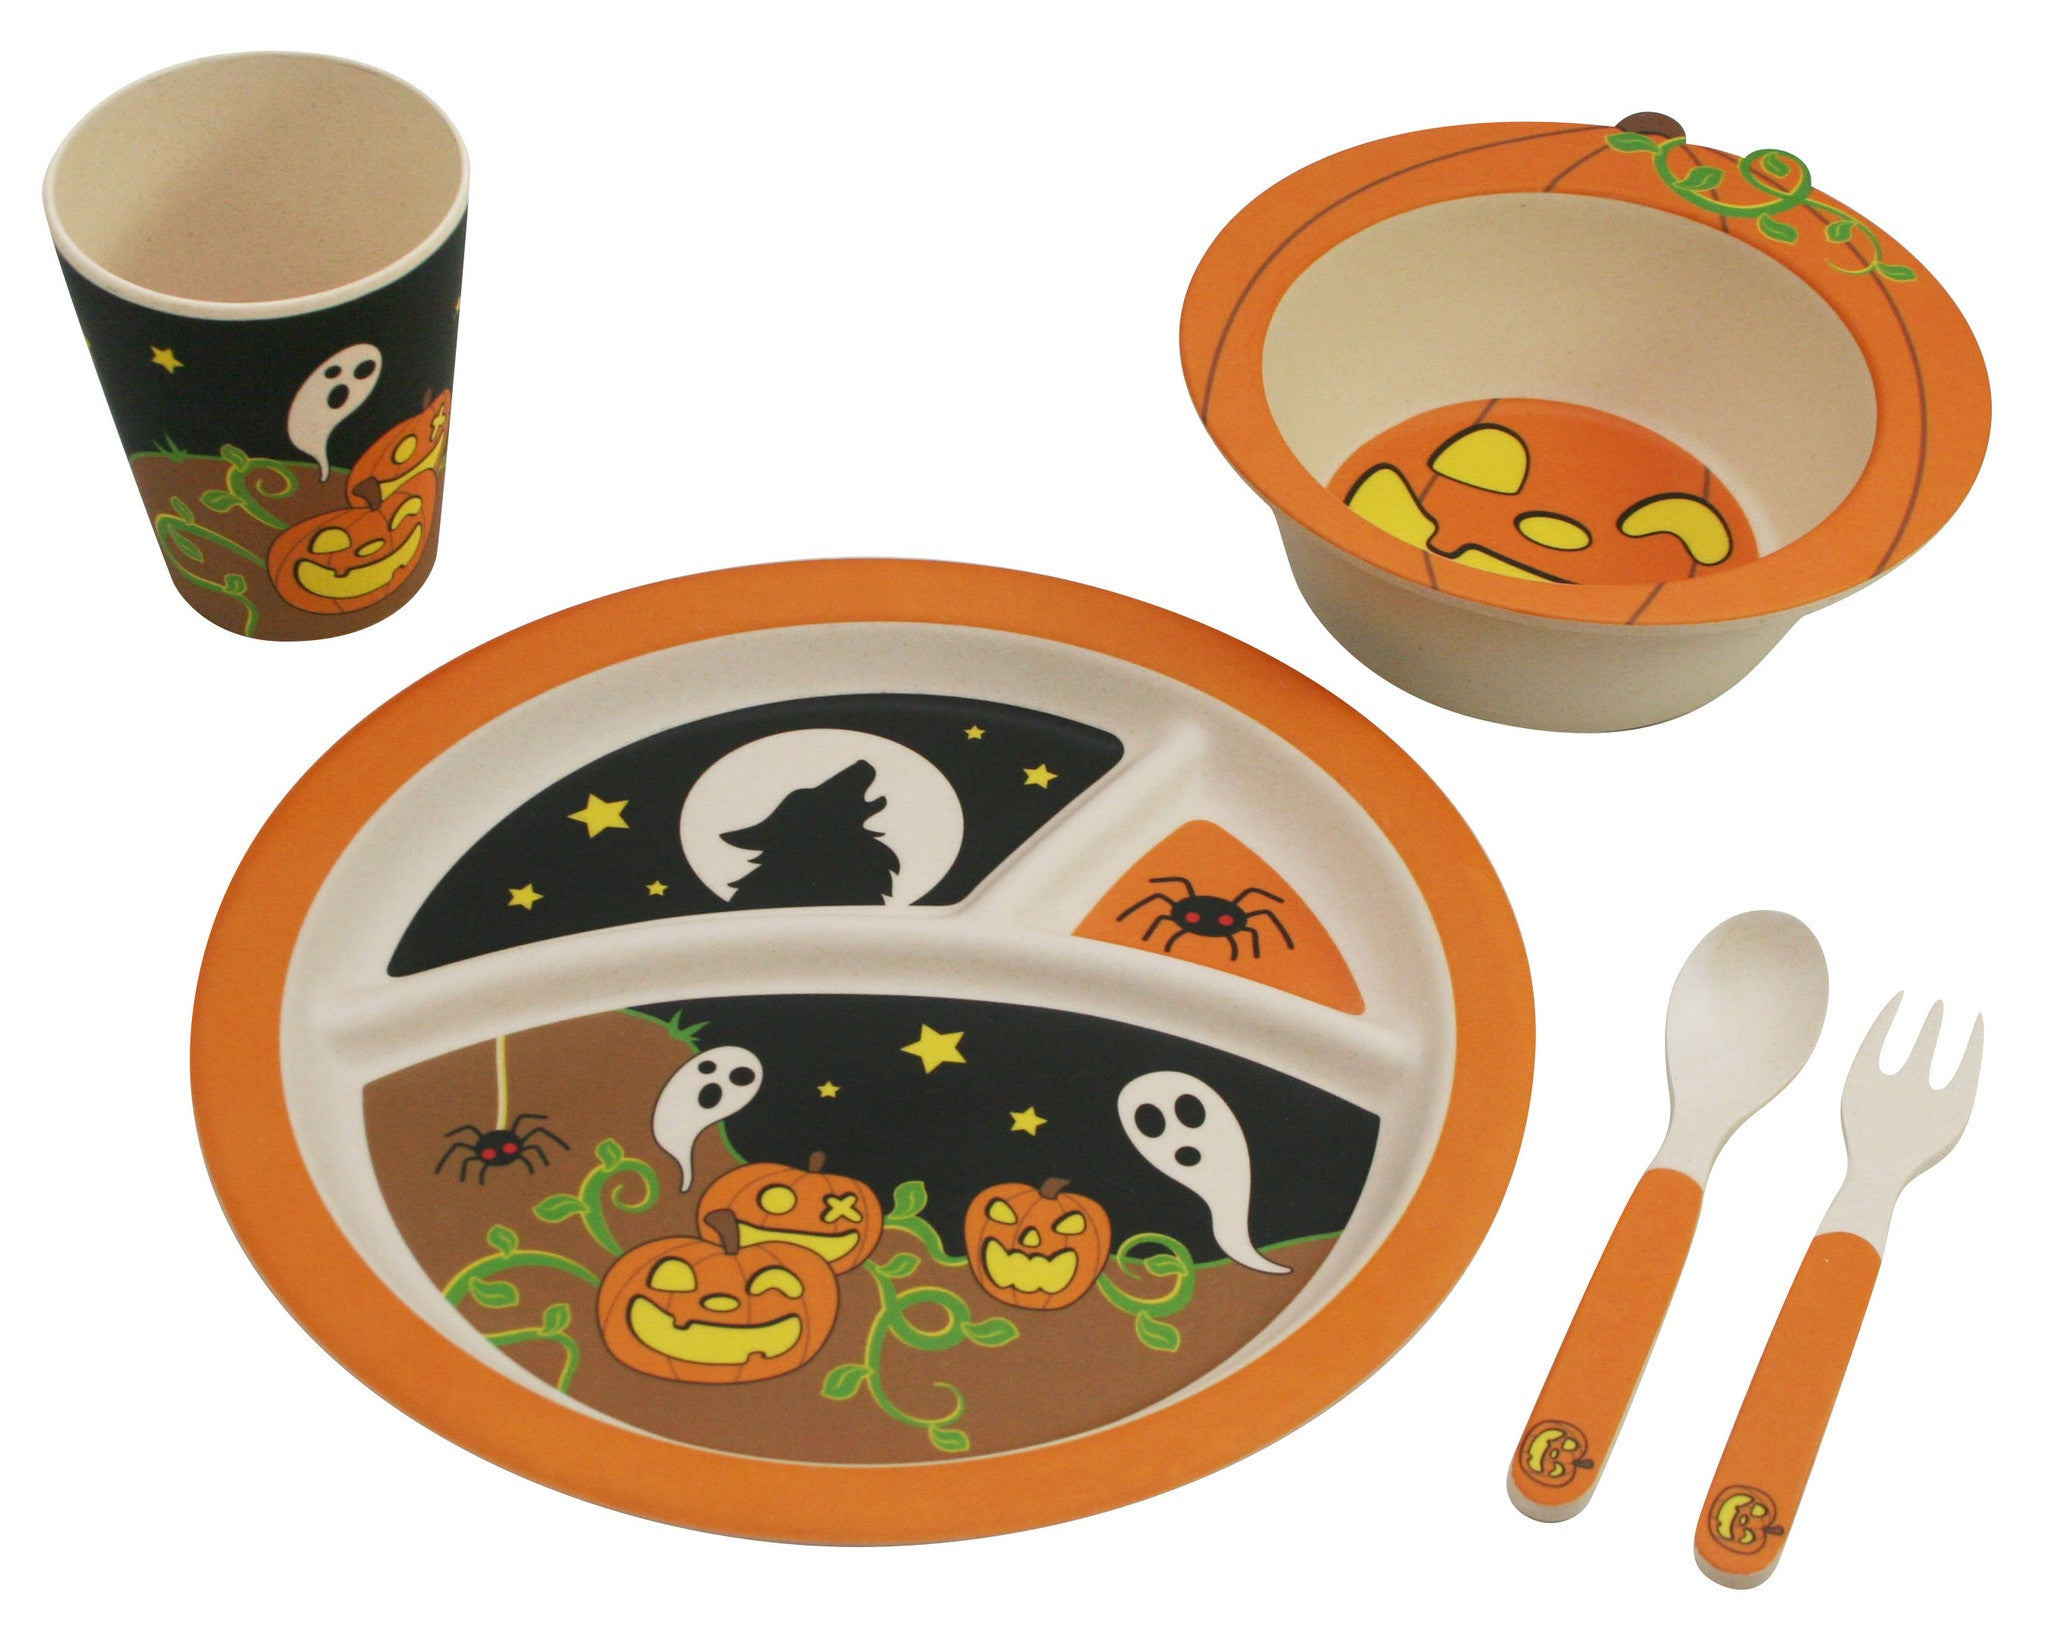 Bamboo Studio Babies/Kids/Toddlers Bamboo Dinnerware Set Halloween Pumpkin 5 Piece  sc 1 th 202 : bamboo dinnerware - pezcame.com